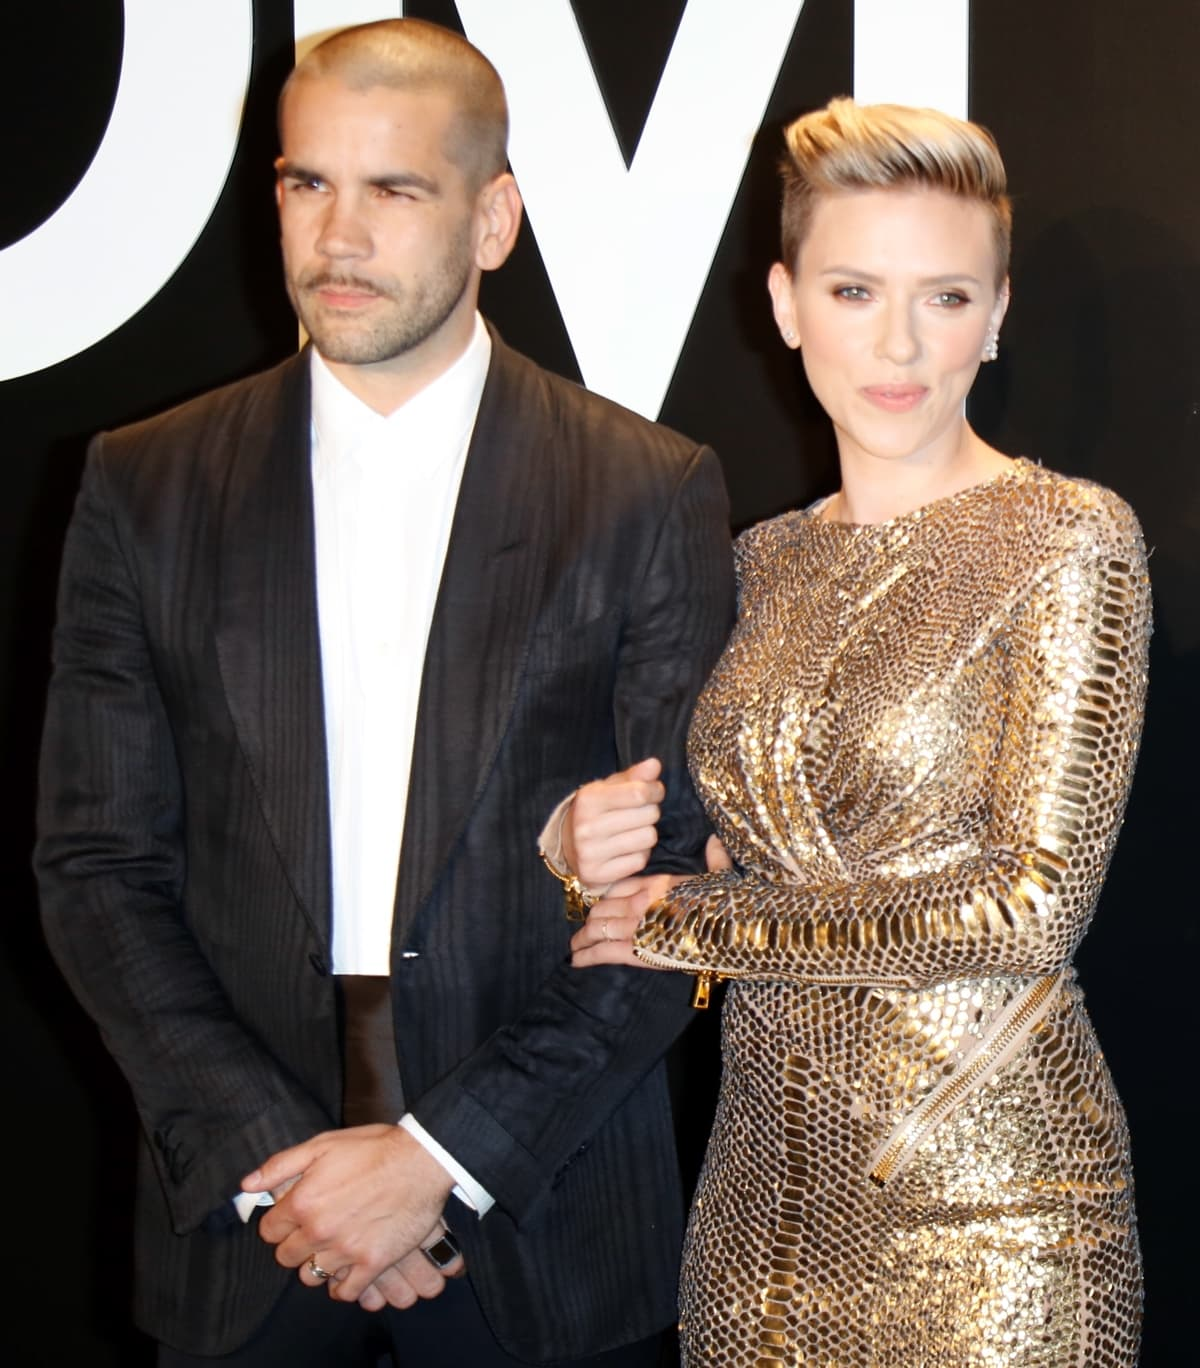 Scarlett Johansson and Romain Dauriac were married for nearly three years and divorced in 2017